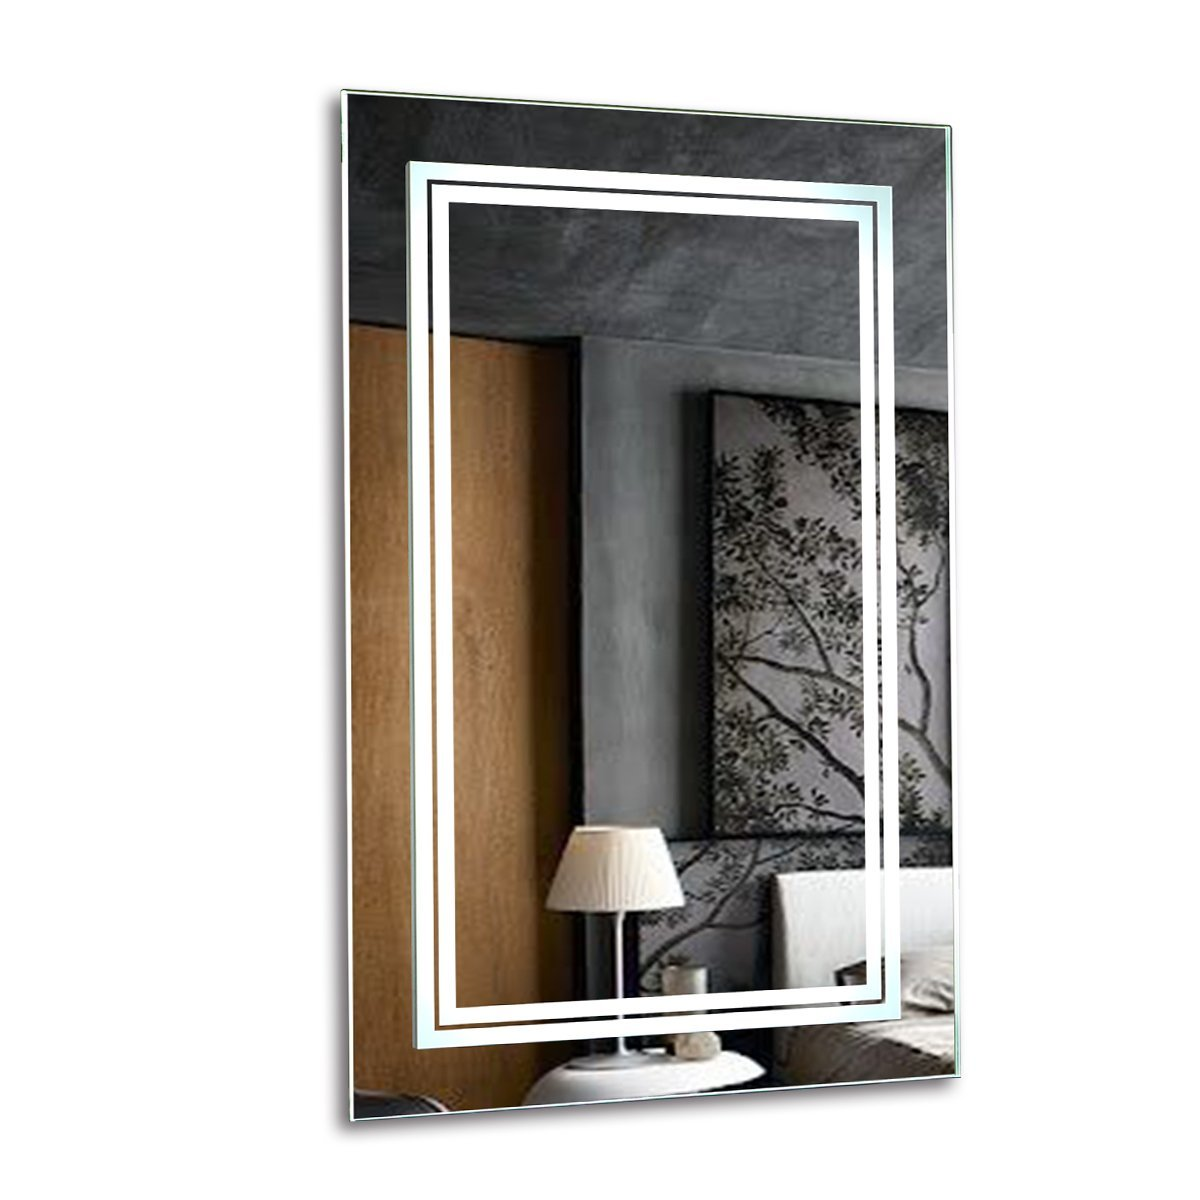 Get Quotations Somelove Alexa Enabled Wifi Wireless Led Wall Mount Lighted Vanity Bathroom Mirror Frameless Polished Edge